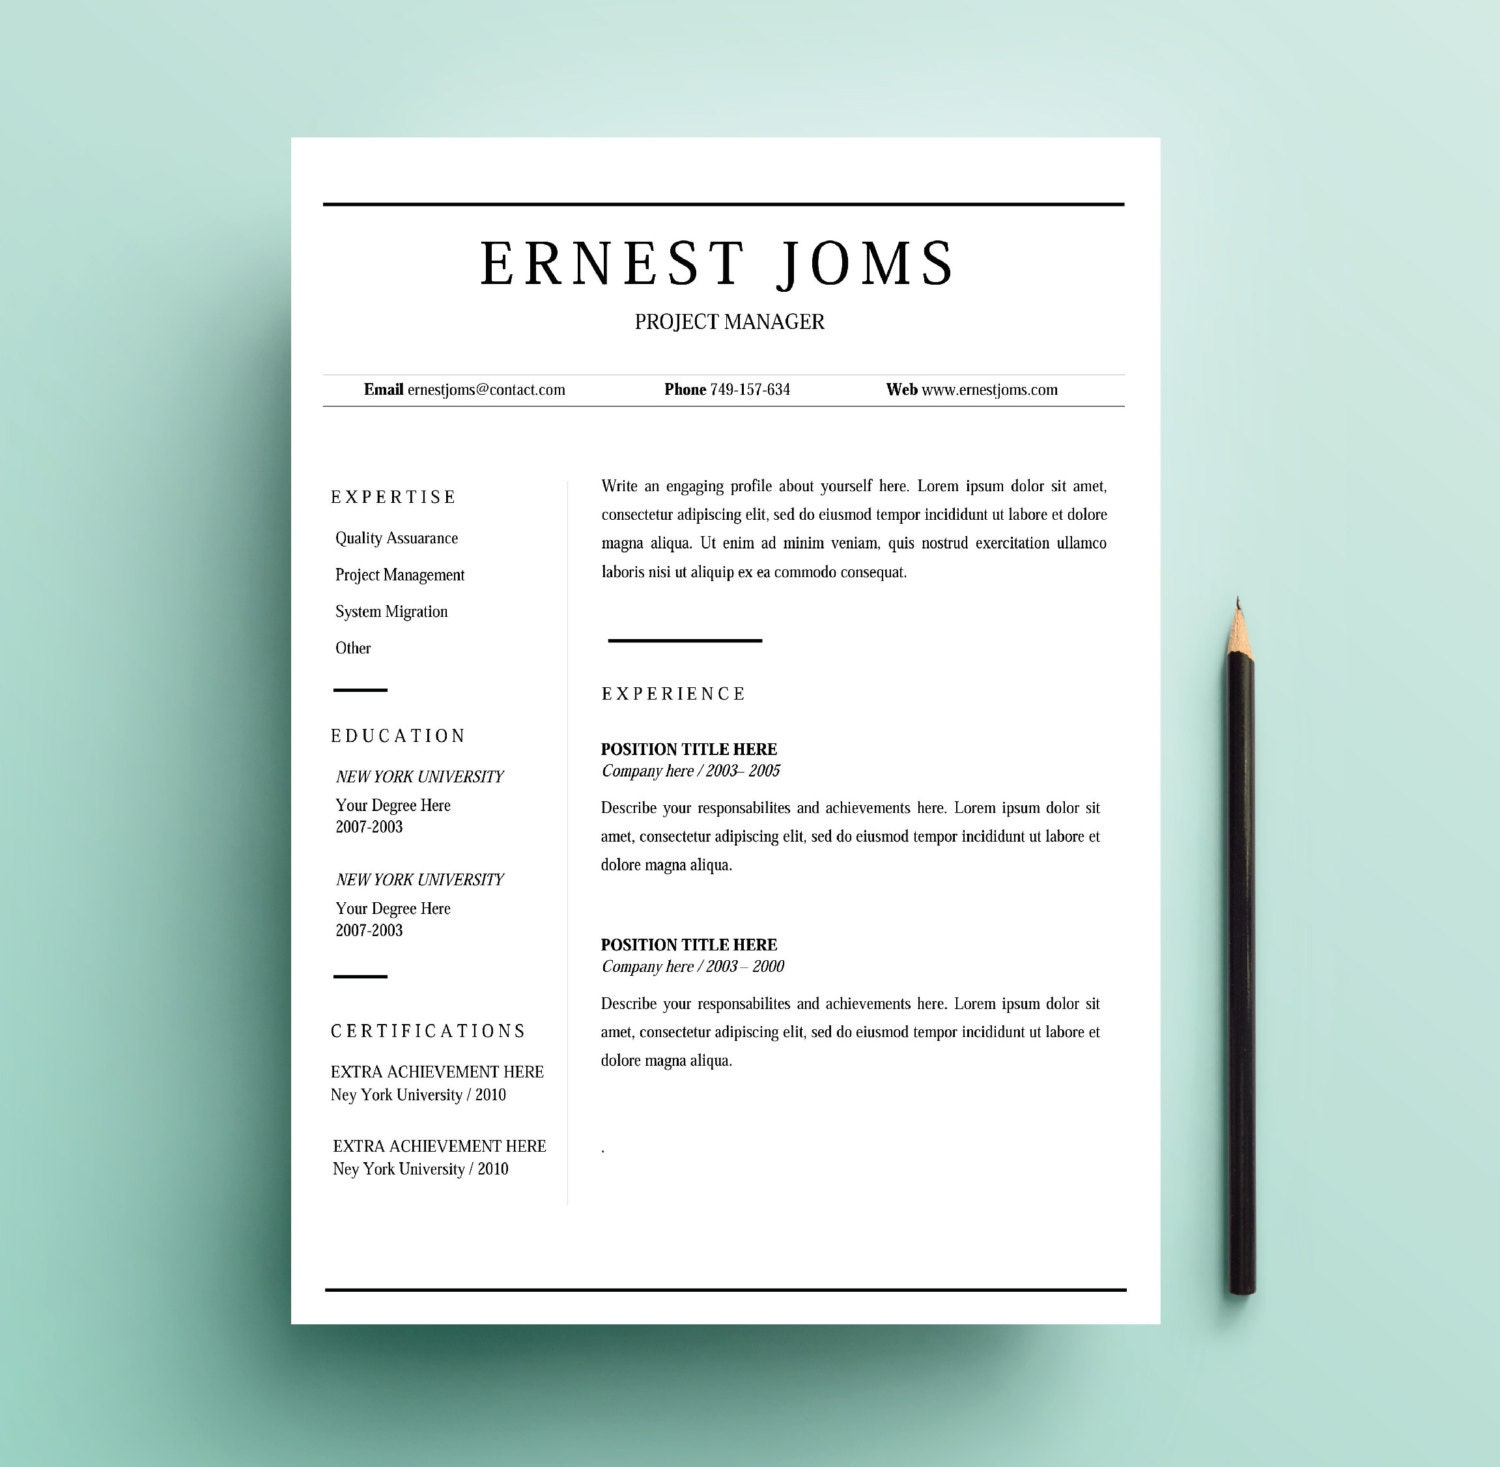 Simple Resume Template Word: Simple Resume Template / Minimal Resume Template / Word By